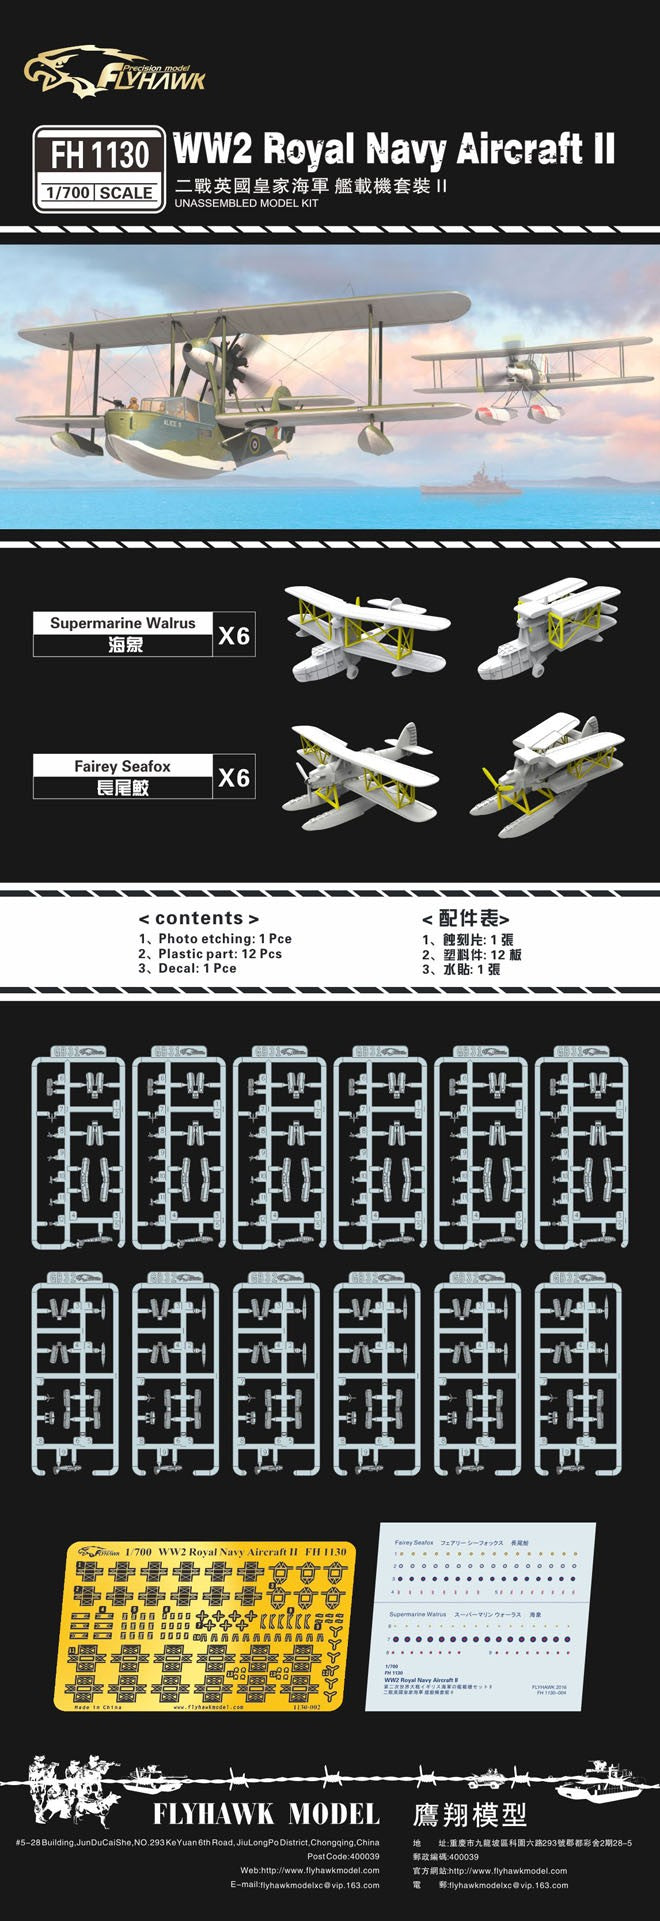 Royal Navy aircraft WW2 set 2, 1/700